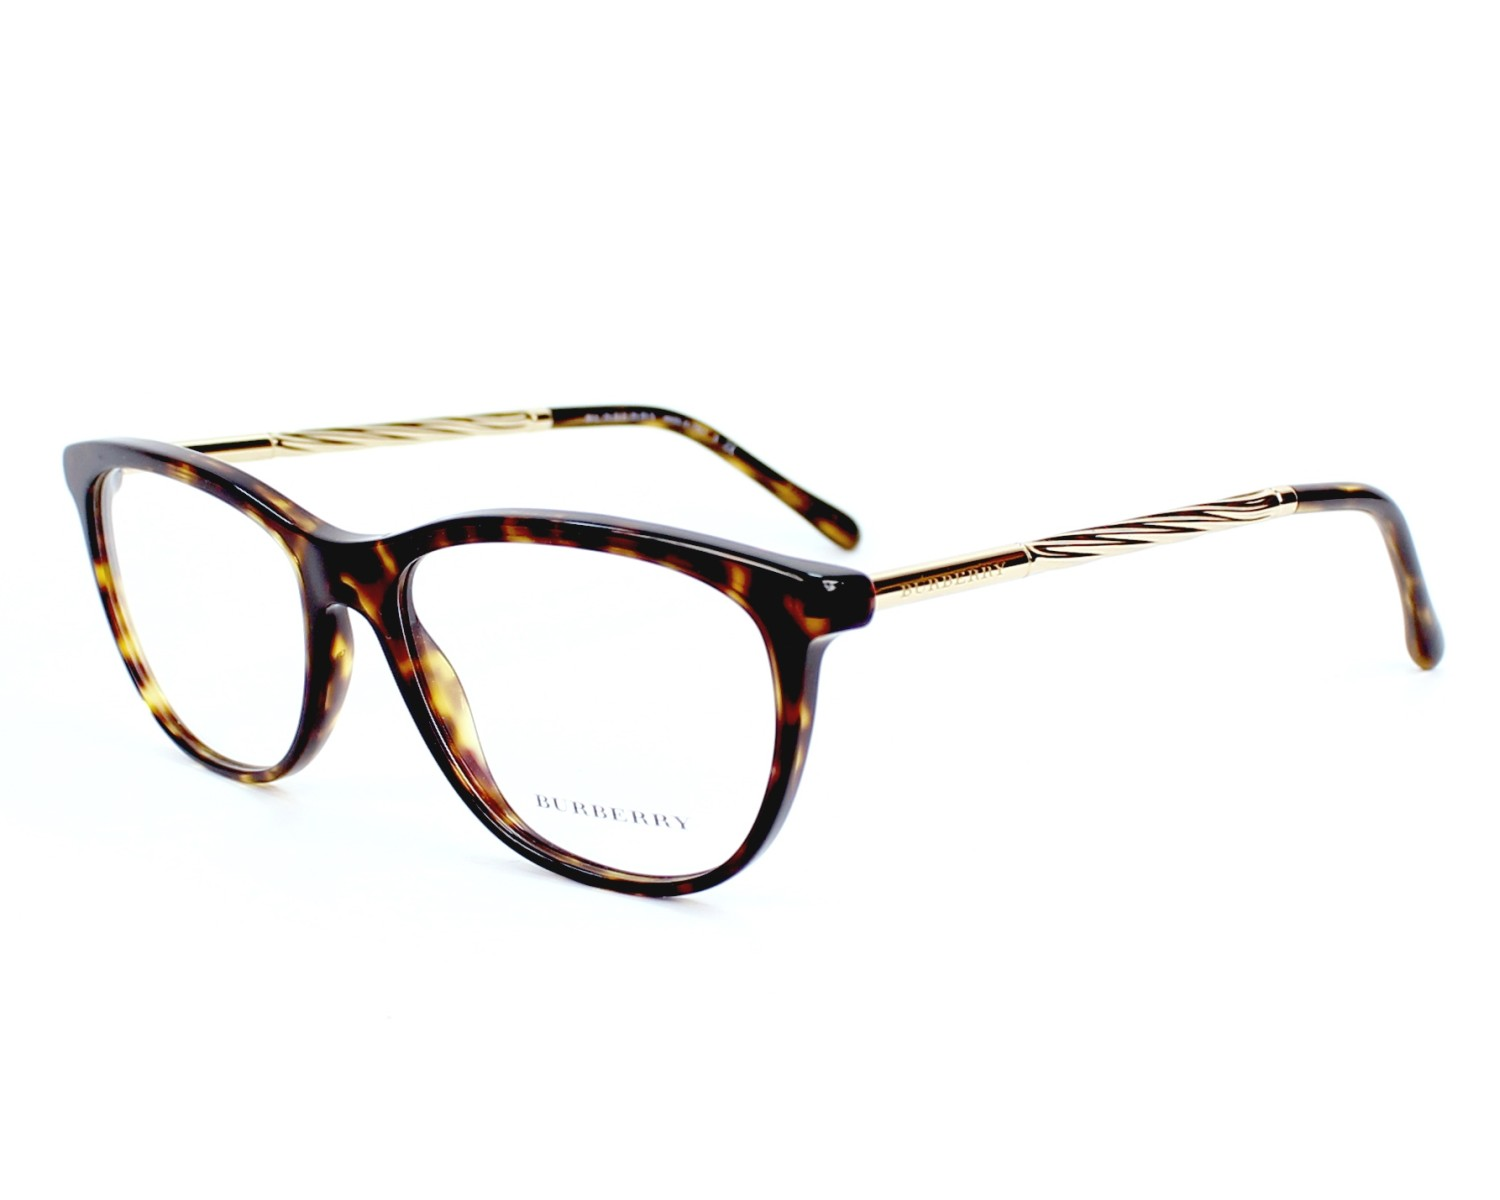 order your burberry eyeglasses be 2189 3002 54 today